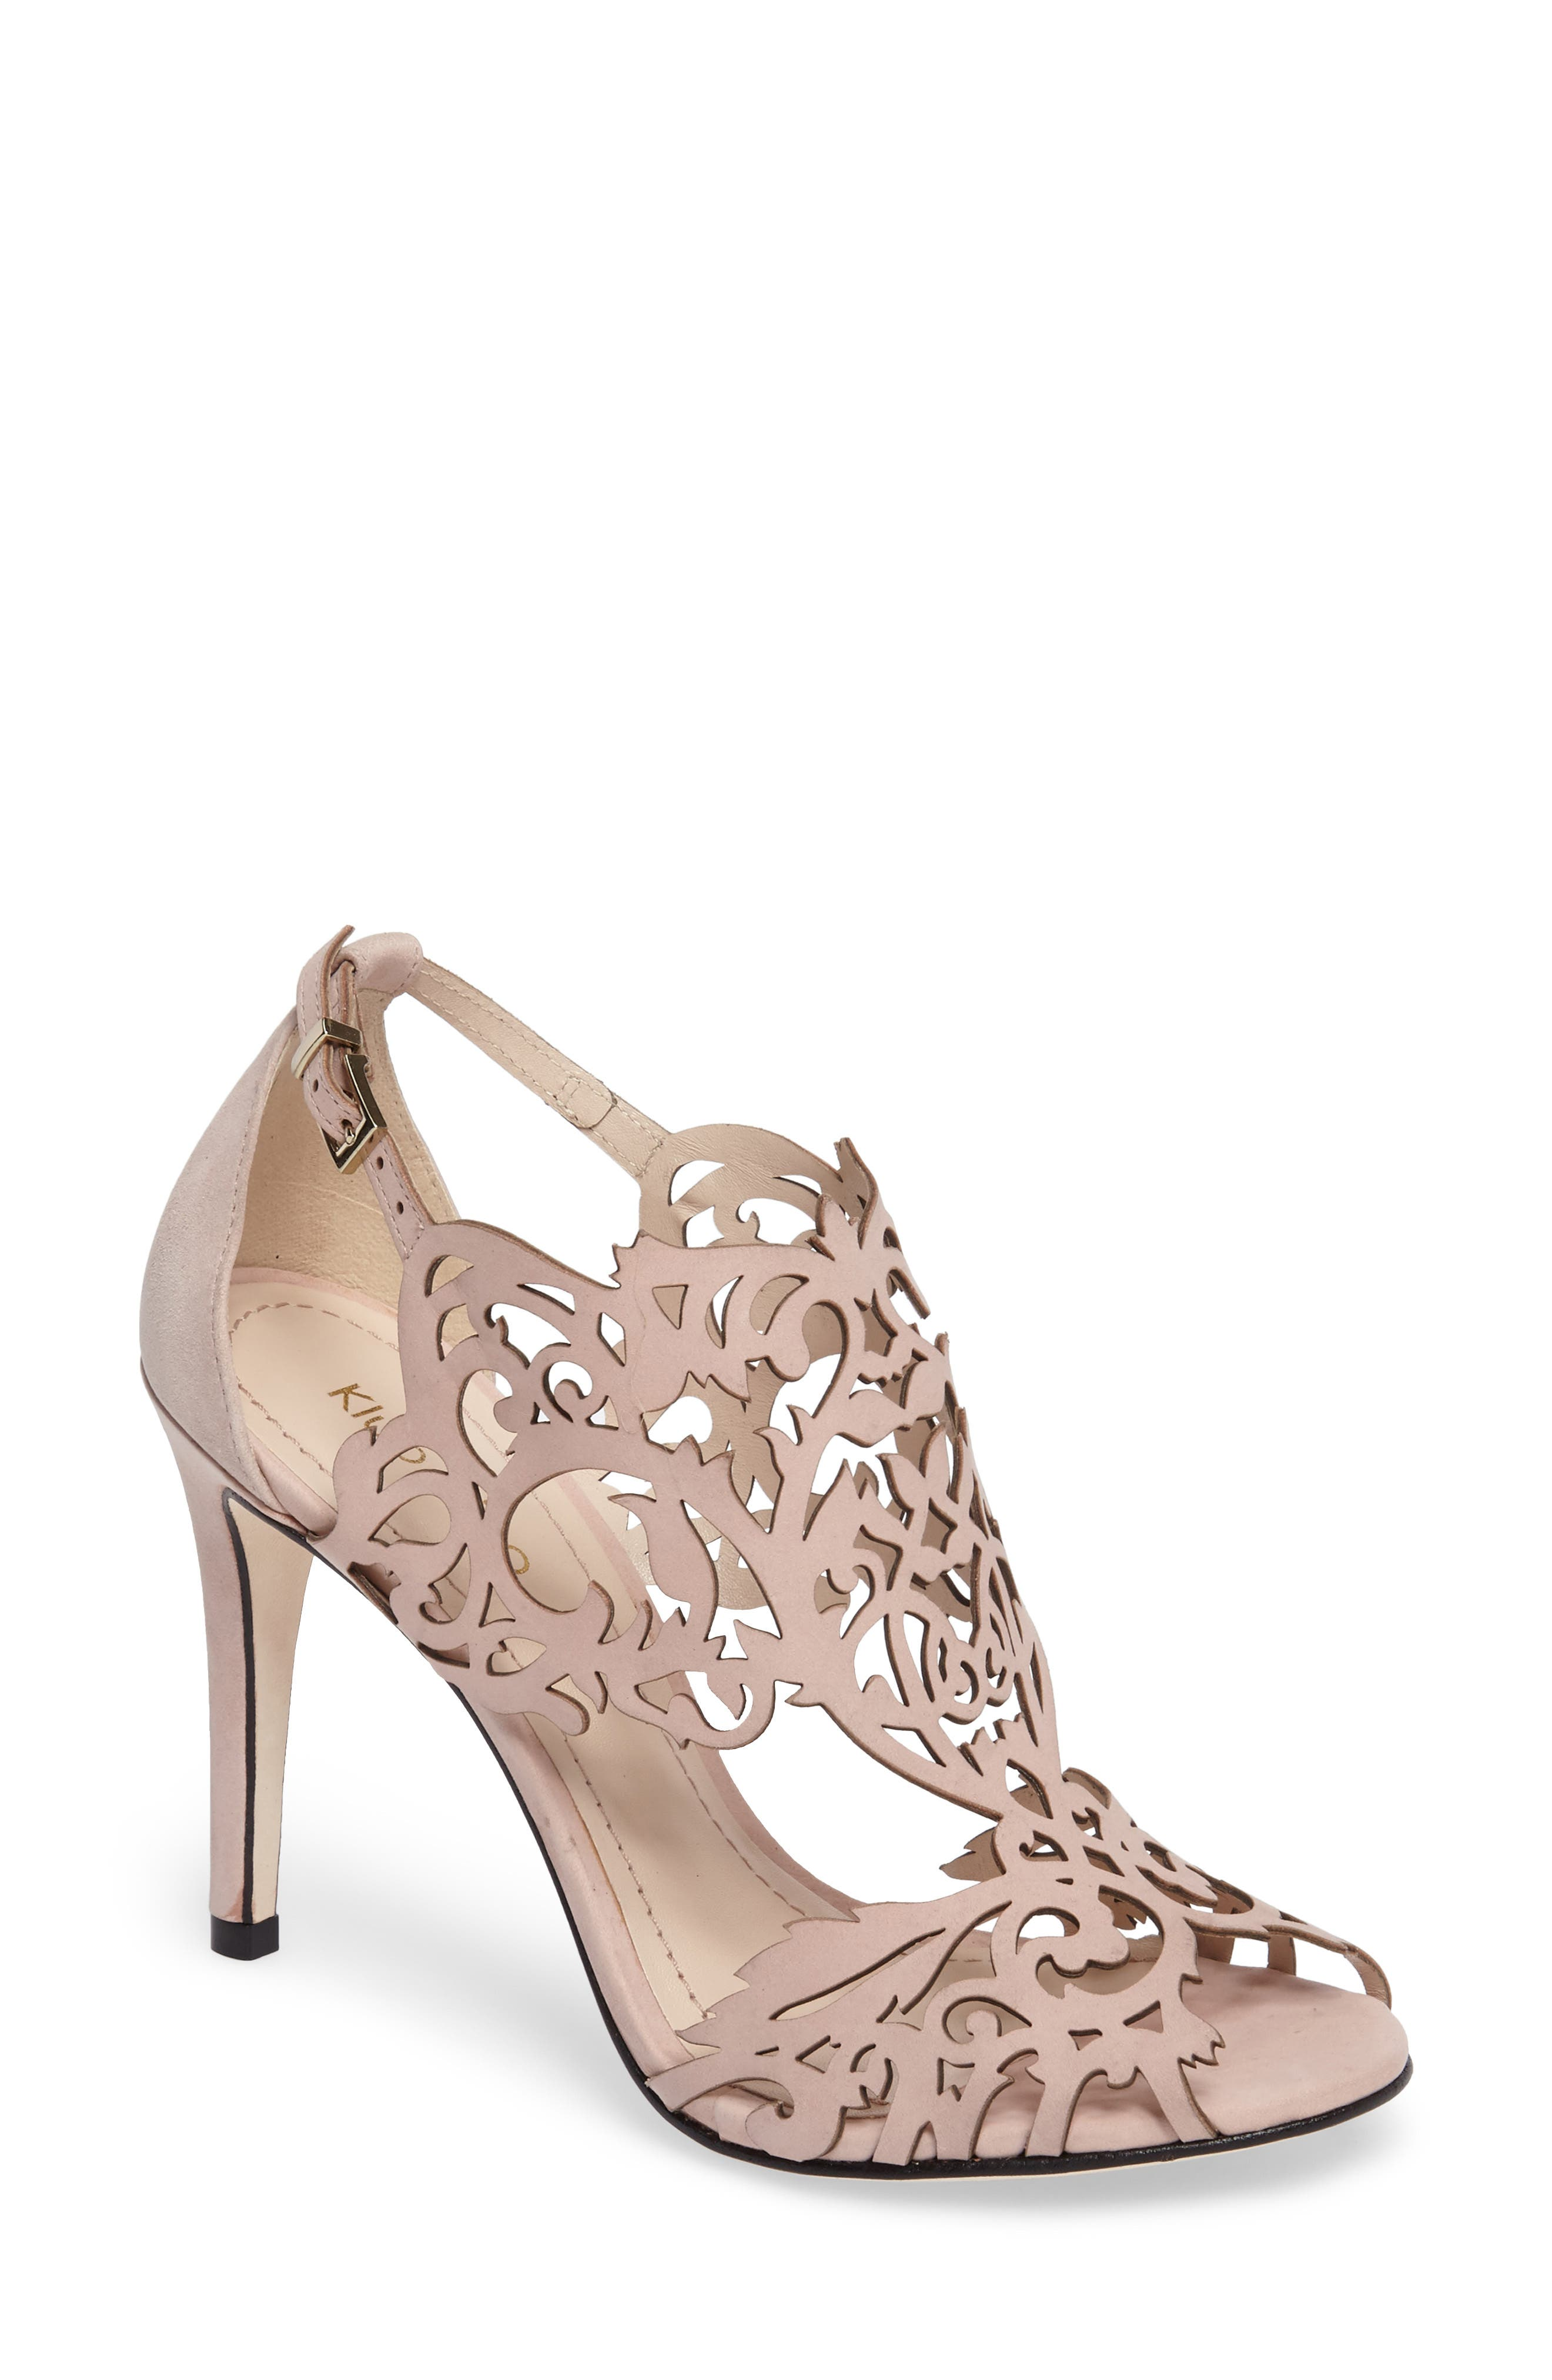 Marcela Laser Cutout Sandal,                             Main thumbnail 1, color,                             Blush Nubuck Leather